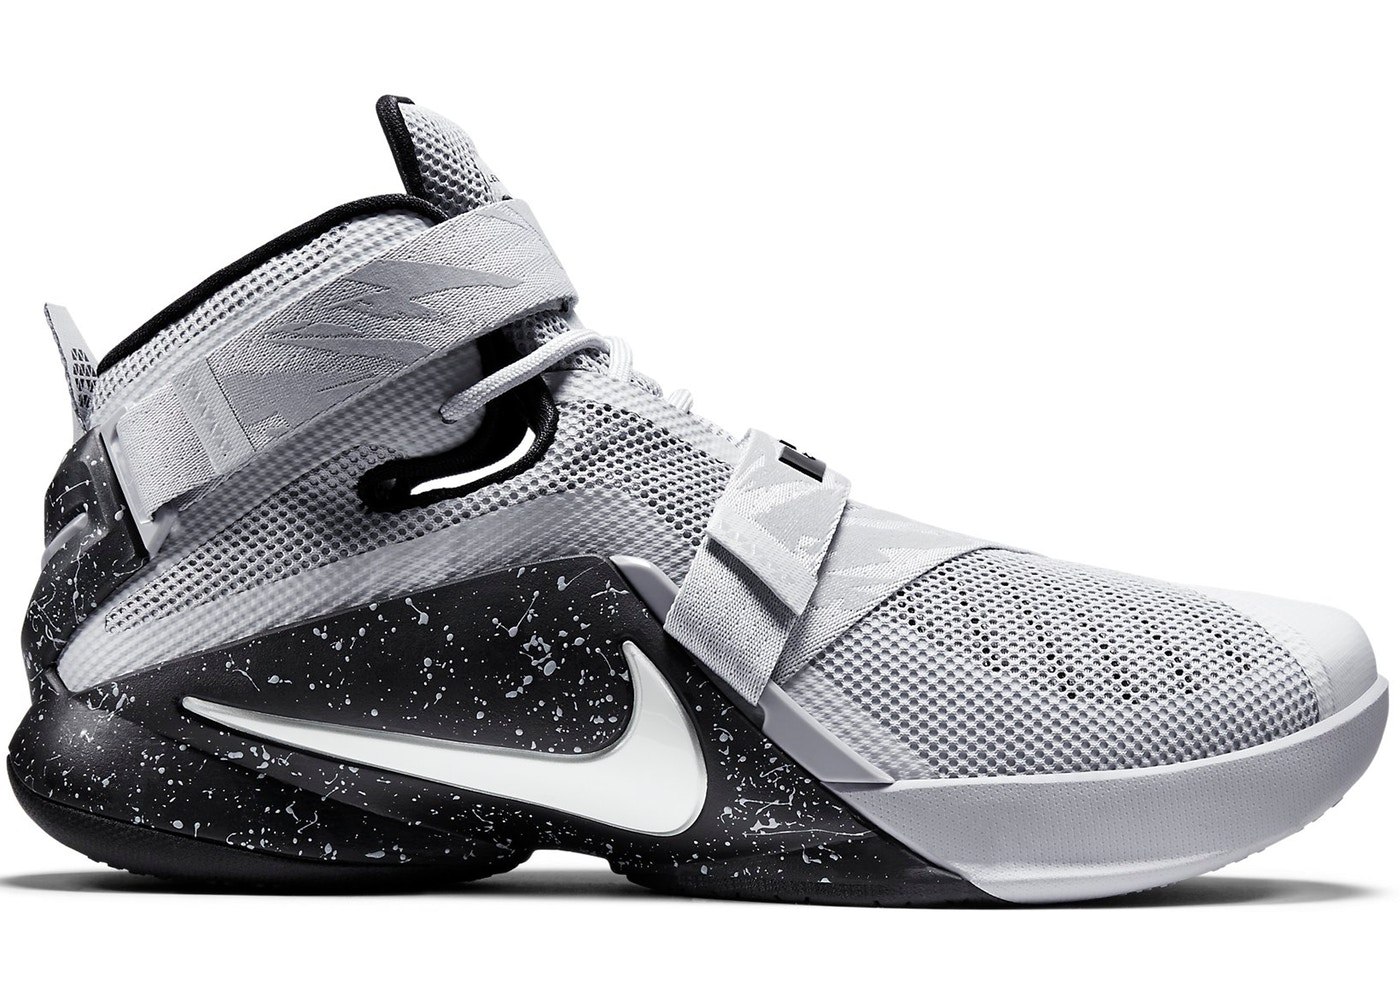 be50c9ff25b LeBron Soldier 9 Wolf Grey White Black - 749490-010